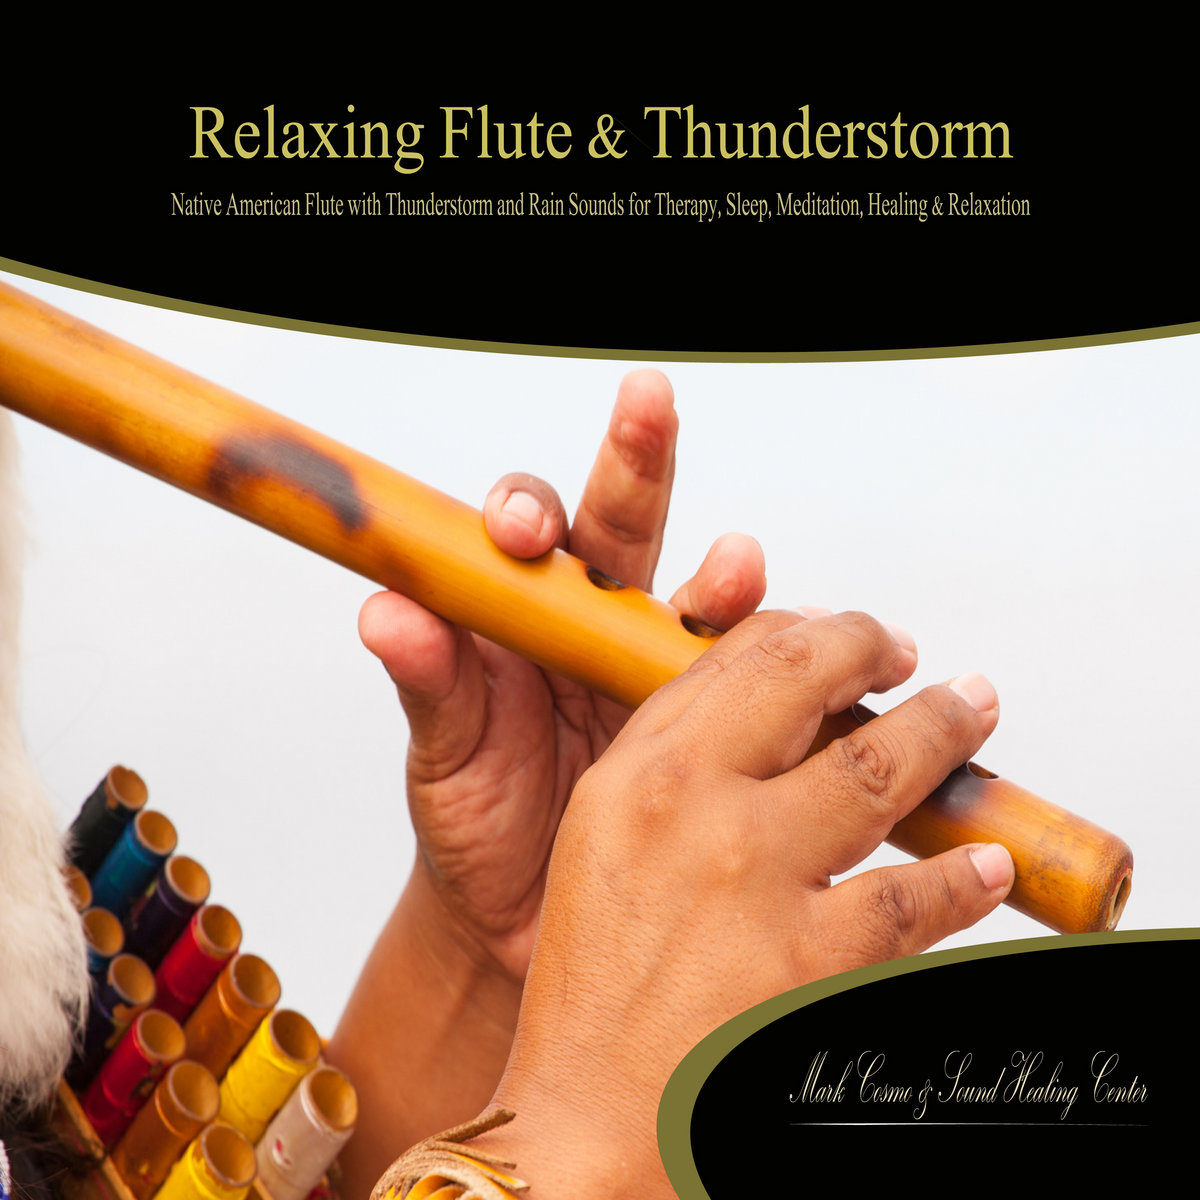 Relaxing Flute & Thunderstorm: Native American Flute with